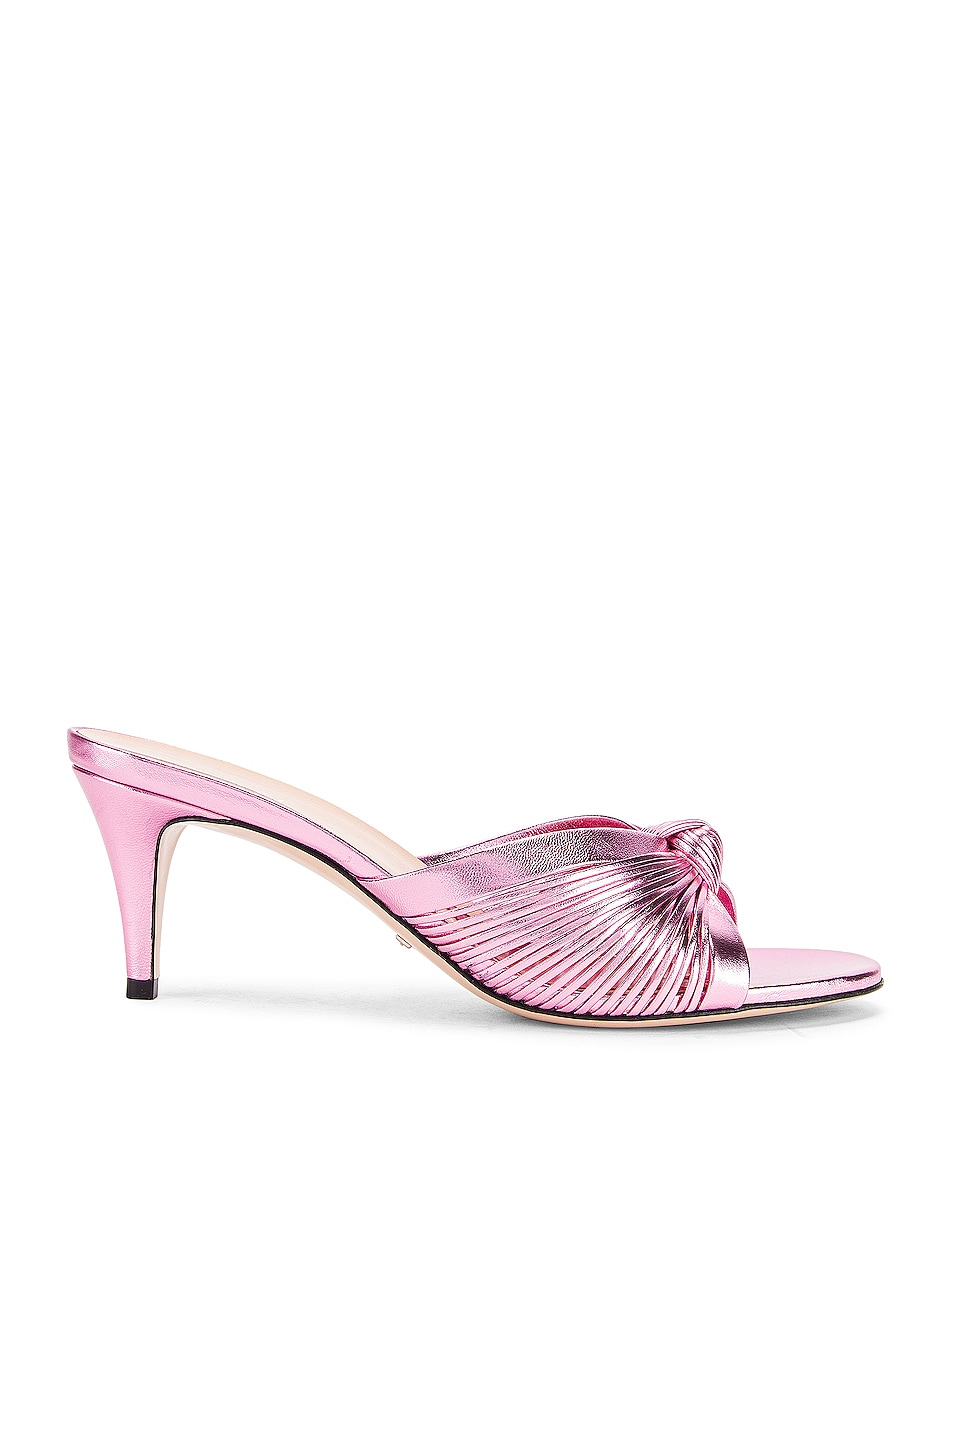 Image 1 of Gucci Metallic Leather Mid Heel Sandals in Rosa